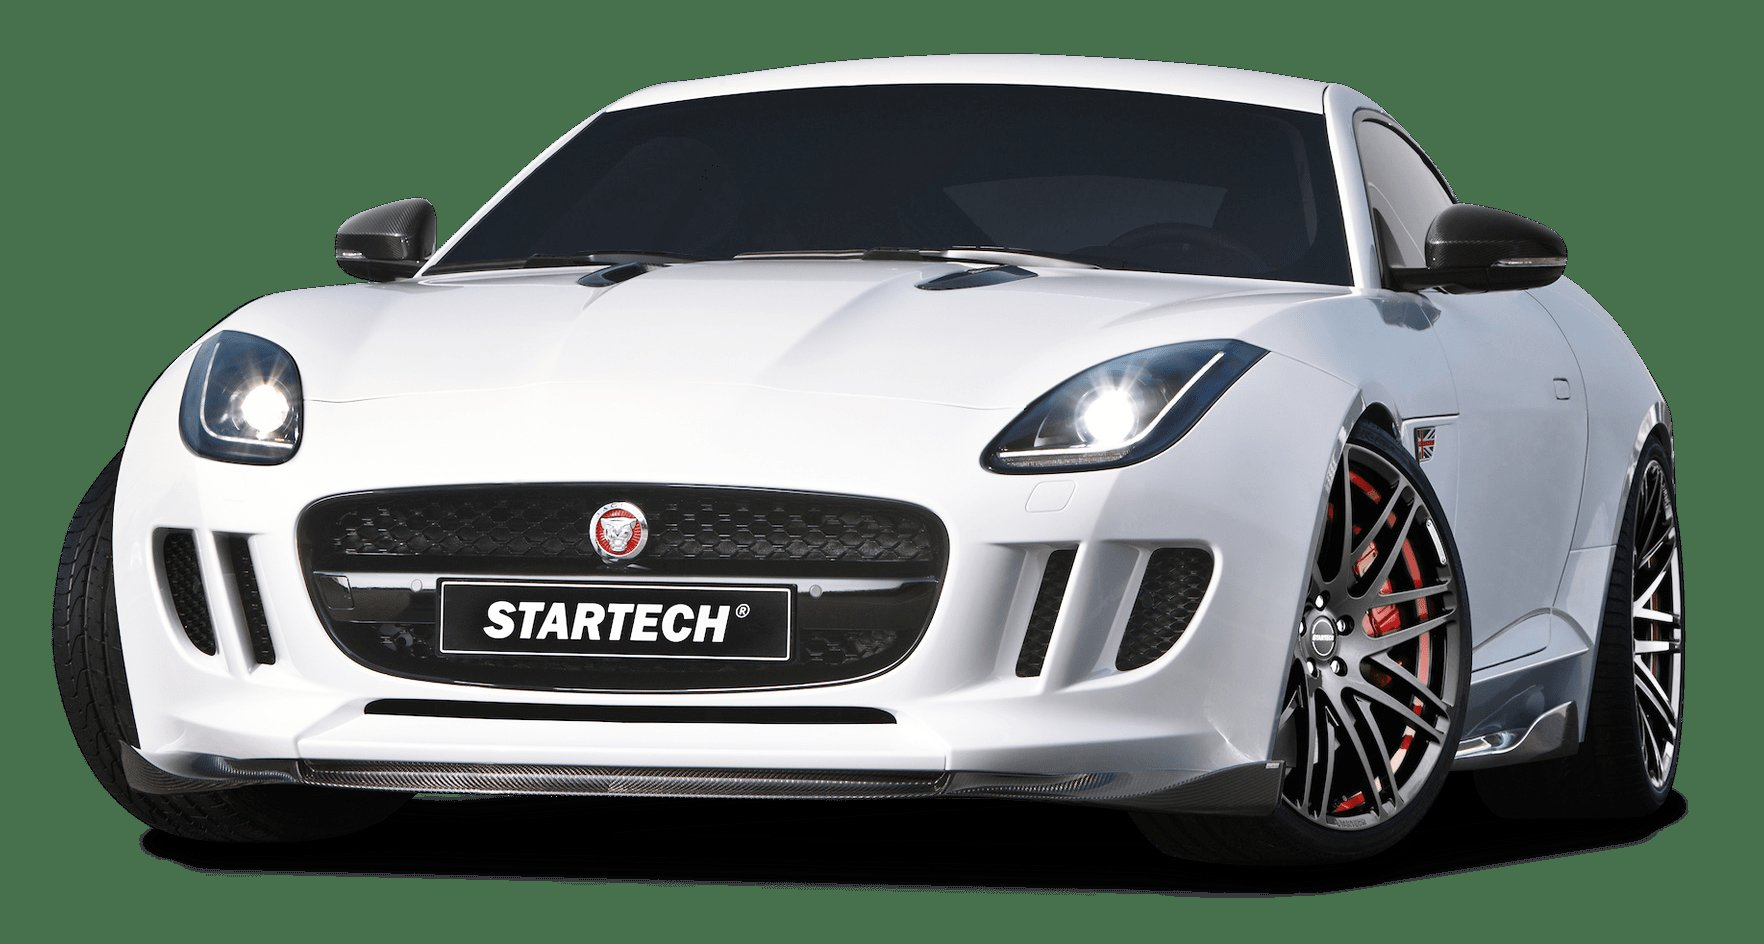 New White Startech Jaguar F Type Coupe Sports Car Png Image On This Month